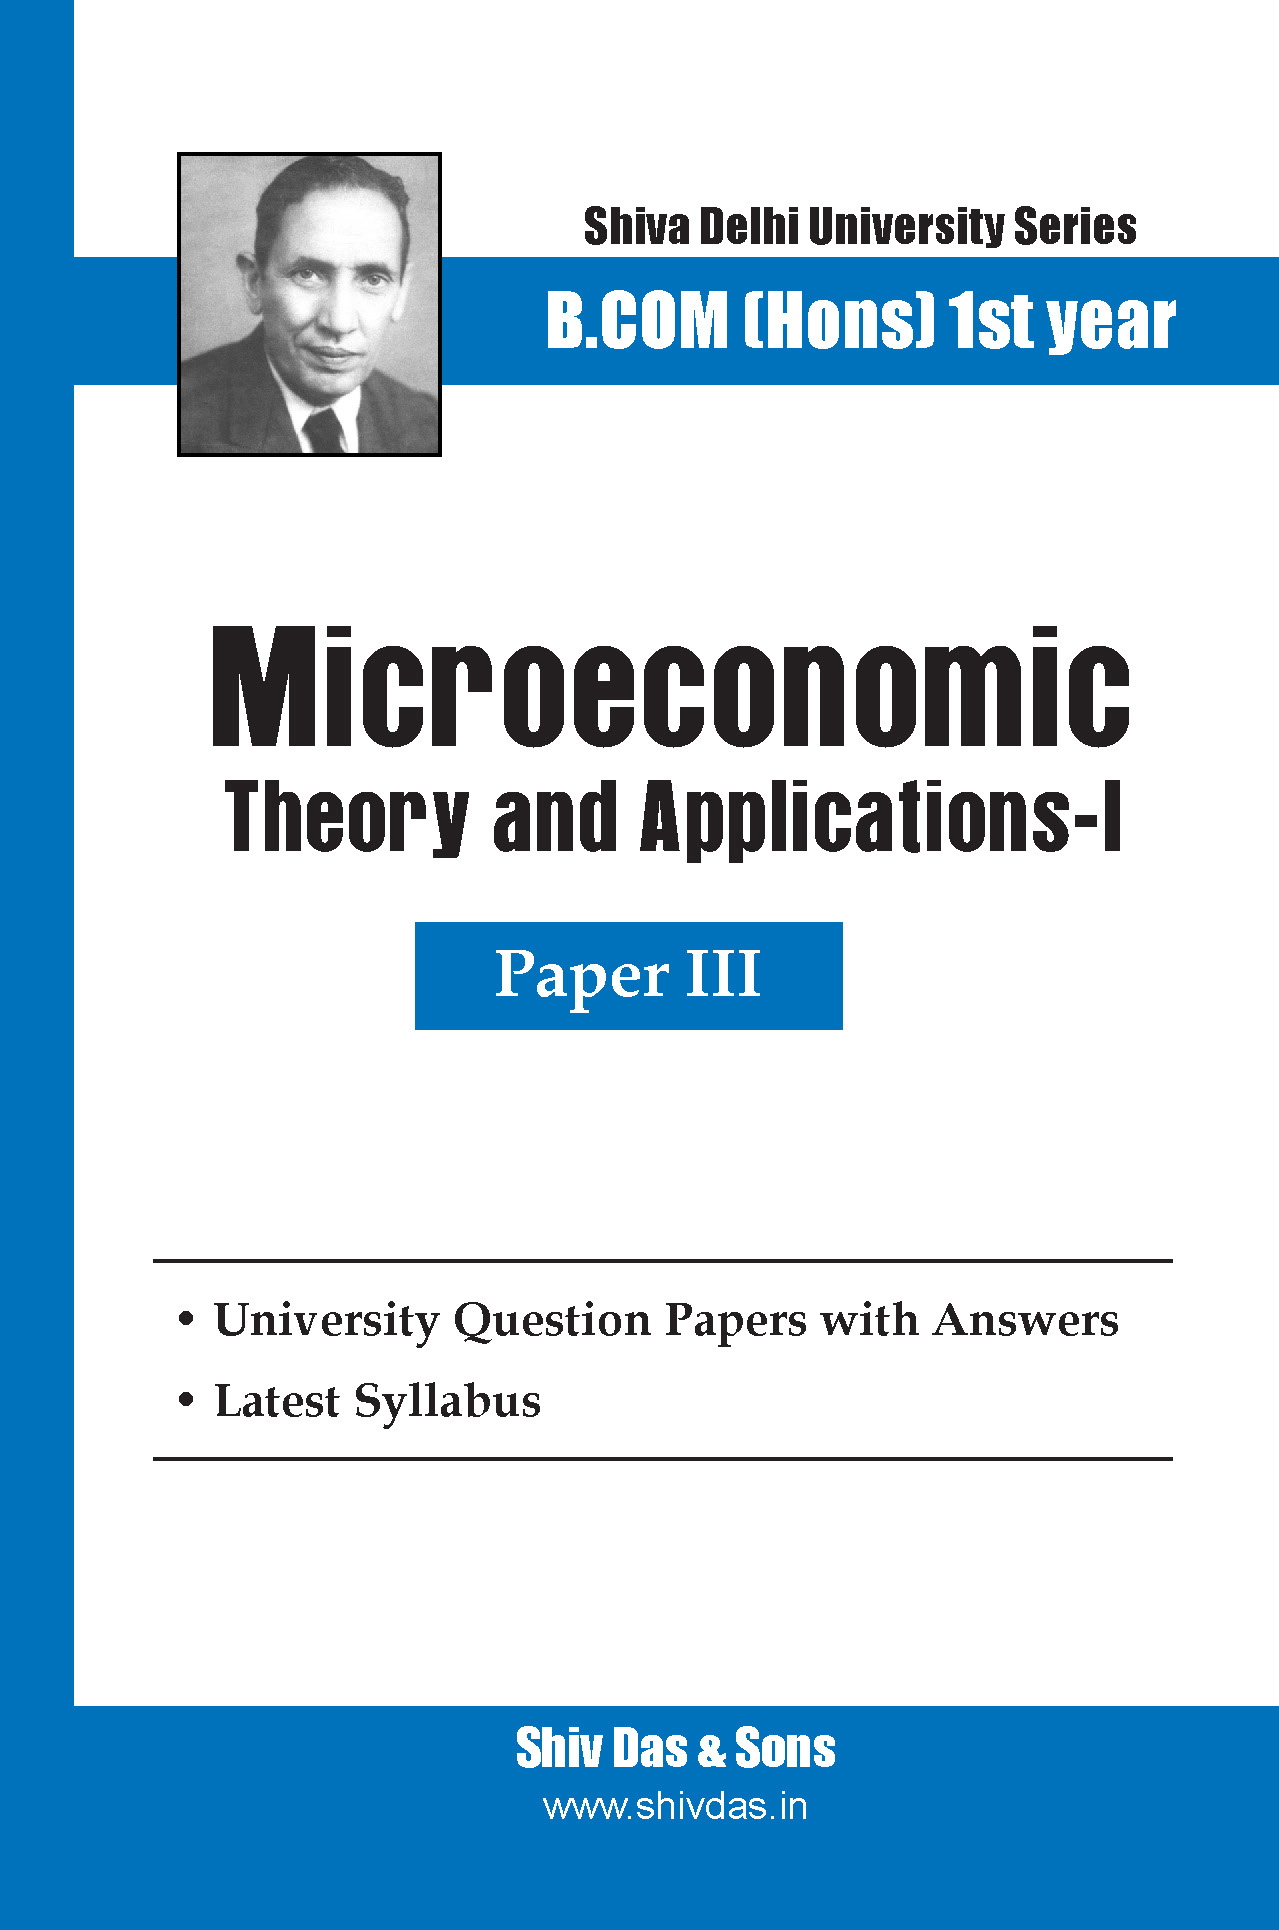 B.Com Hons-SOL/External-1st Year-Microeconomics theory and Applications-I-Shiv Das-Delhi University Series